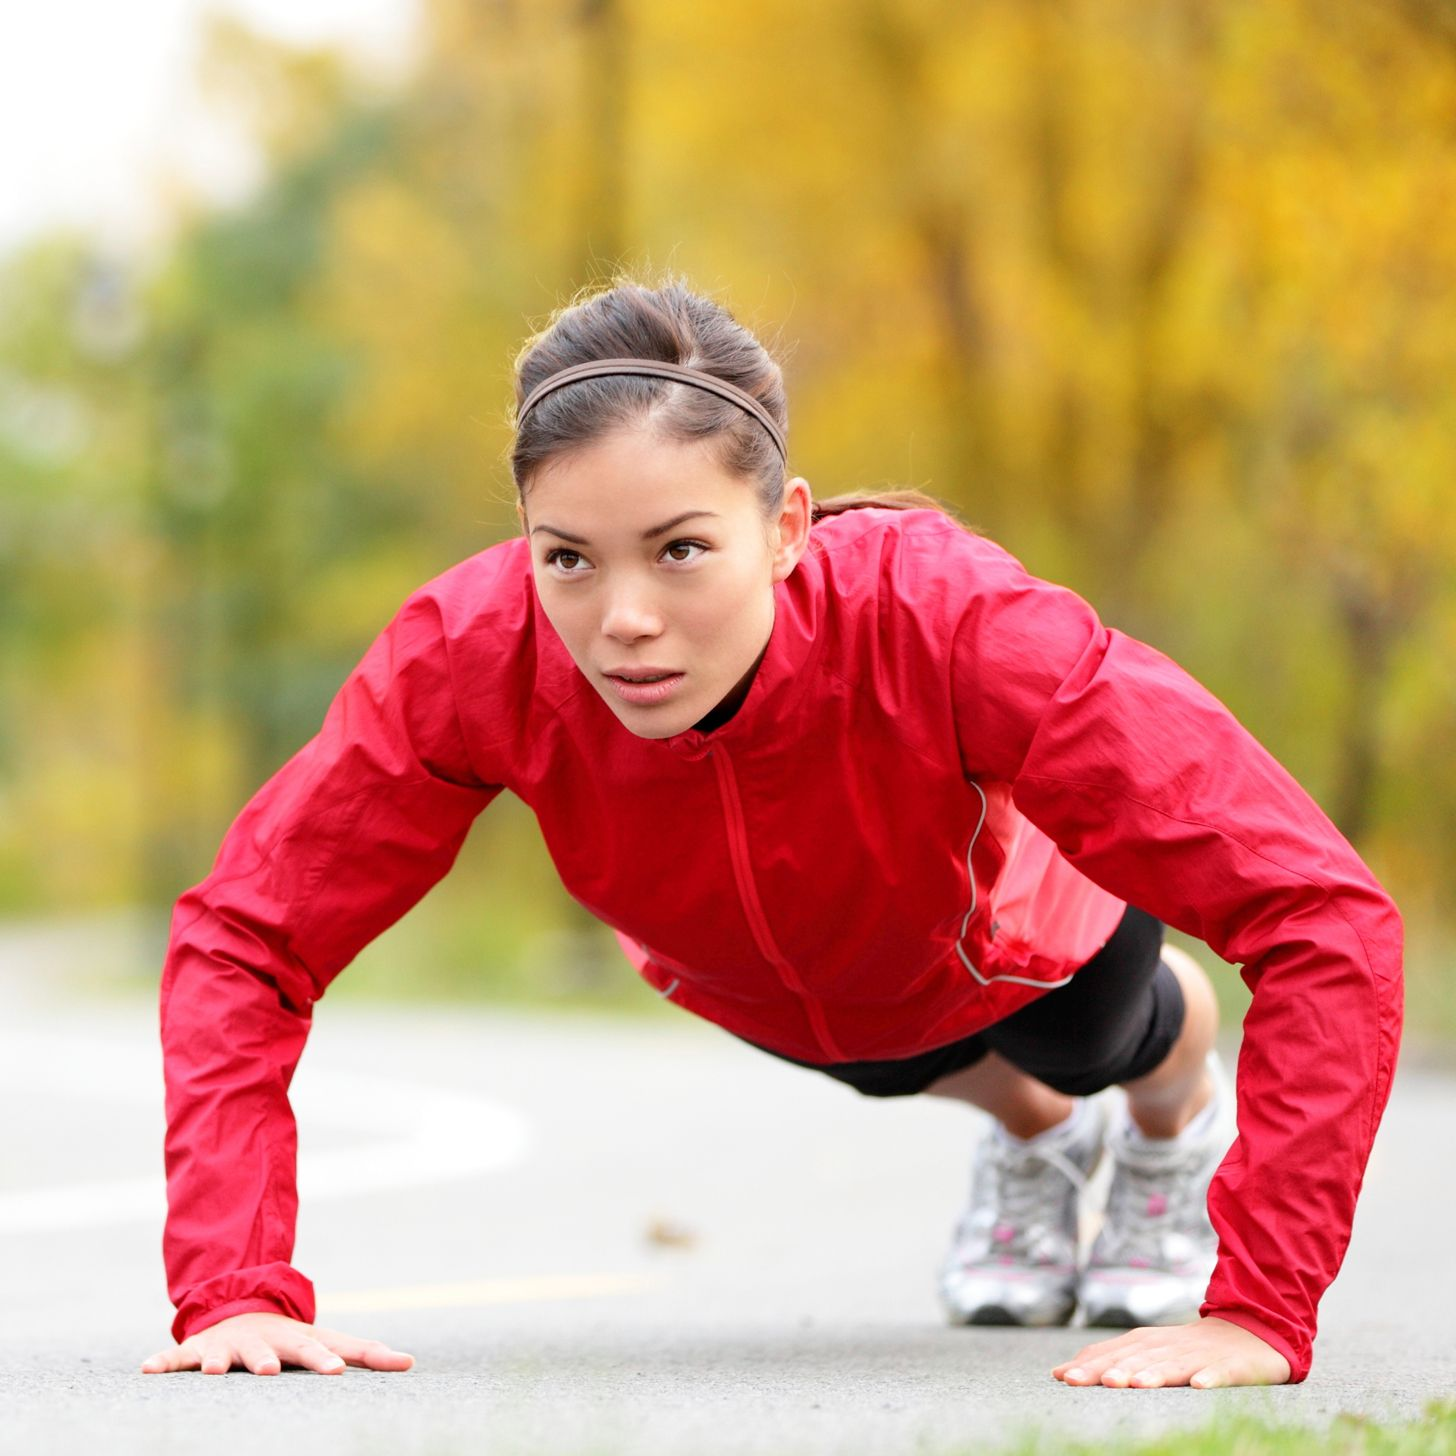 NoEquipment Moves That Transform Your Body Body weight